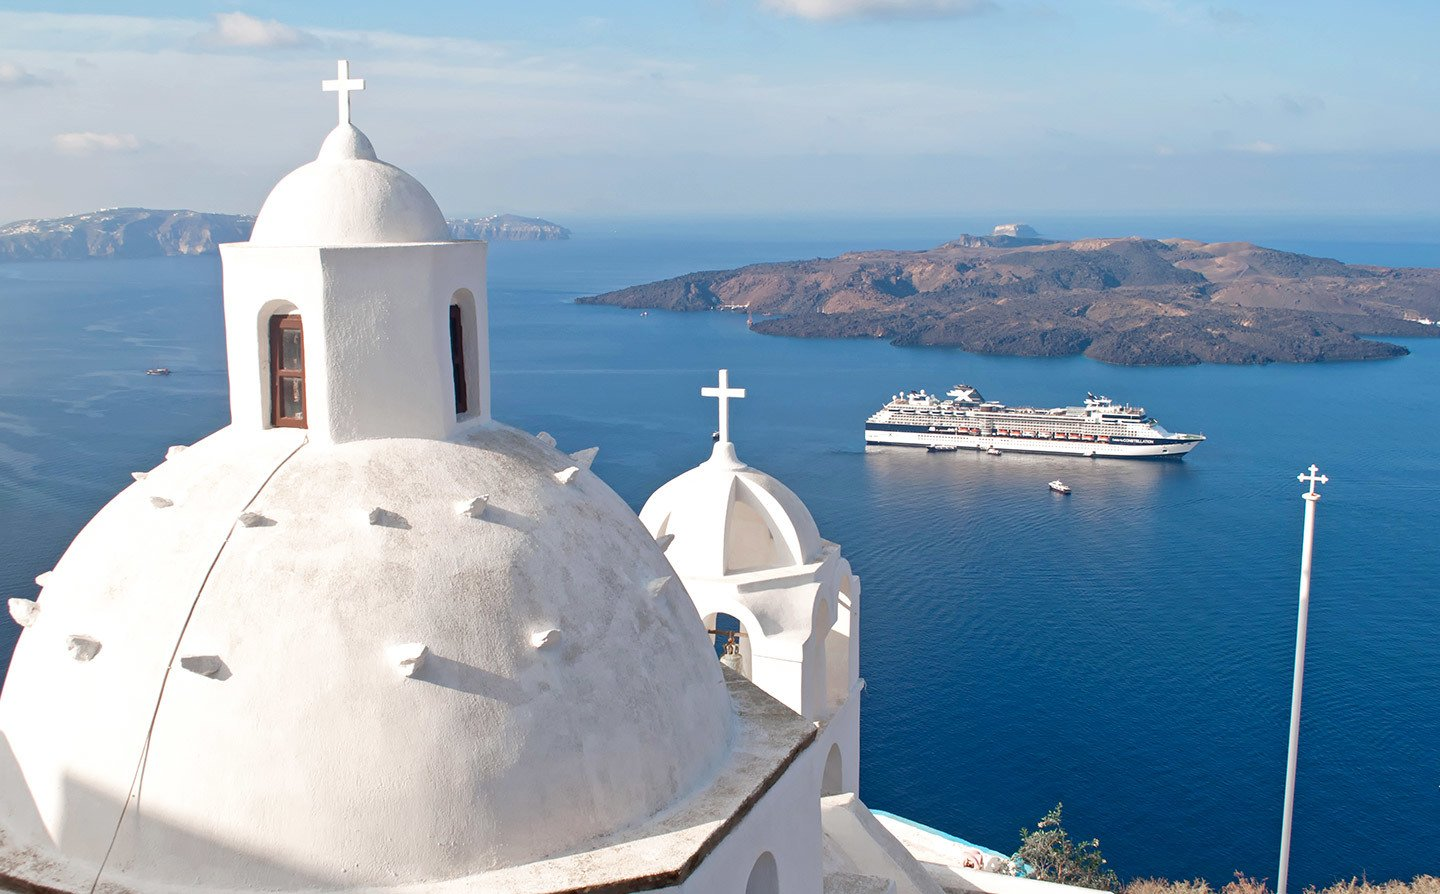 Cruise ship in Santorini, Greece